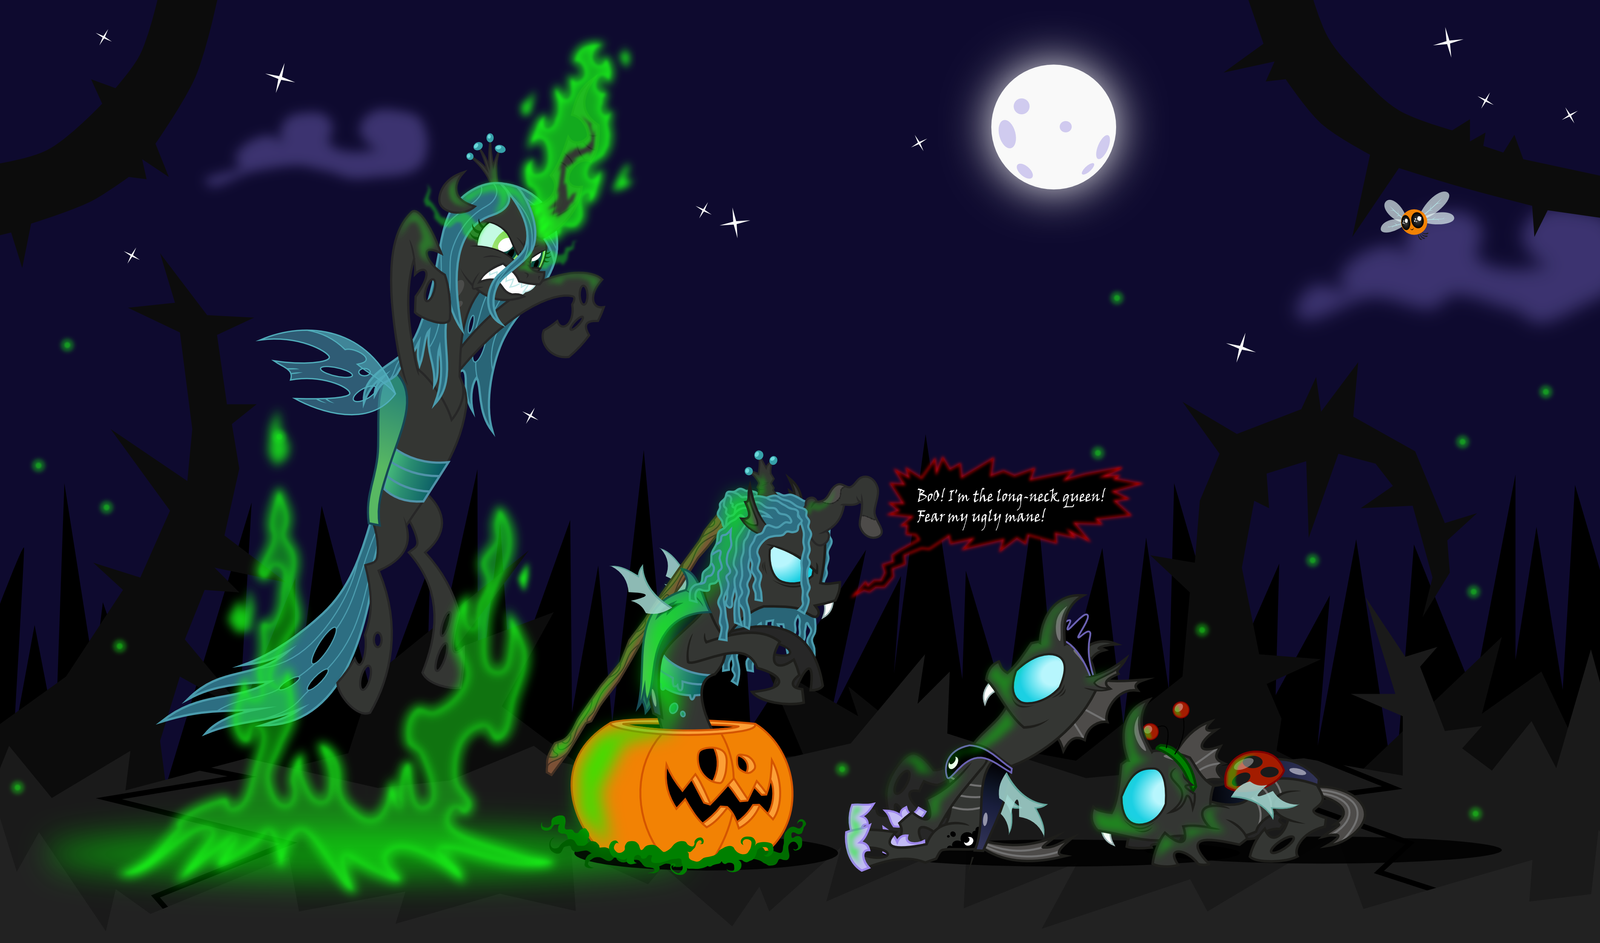 Too late for Halloween? I hope not by zimvader42 on DeviantArt